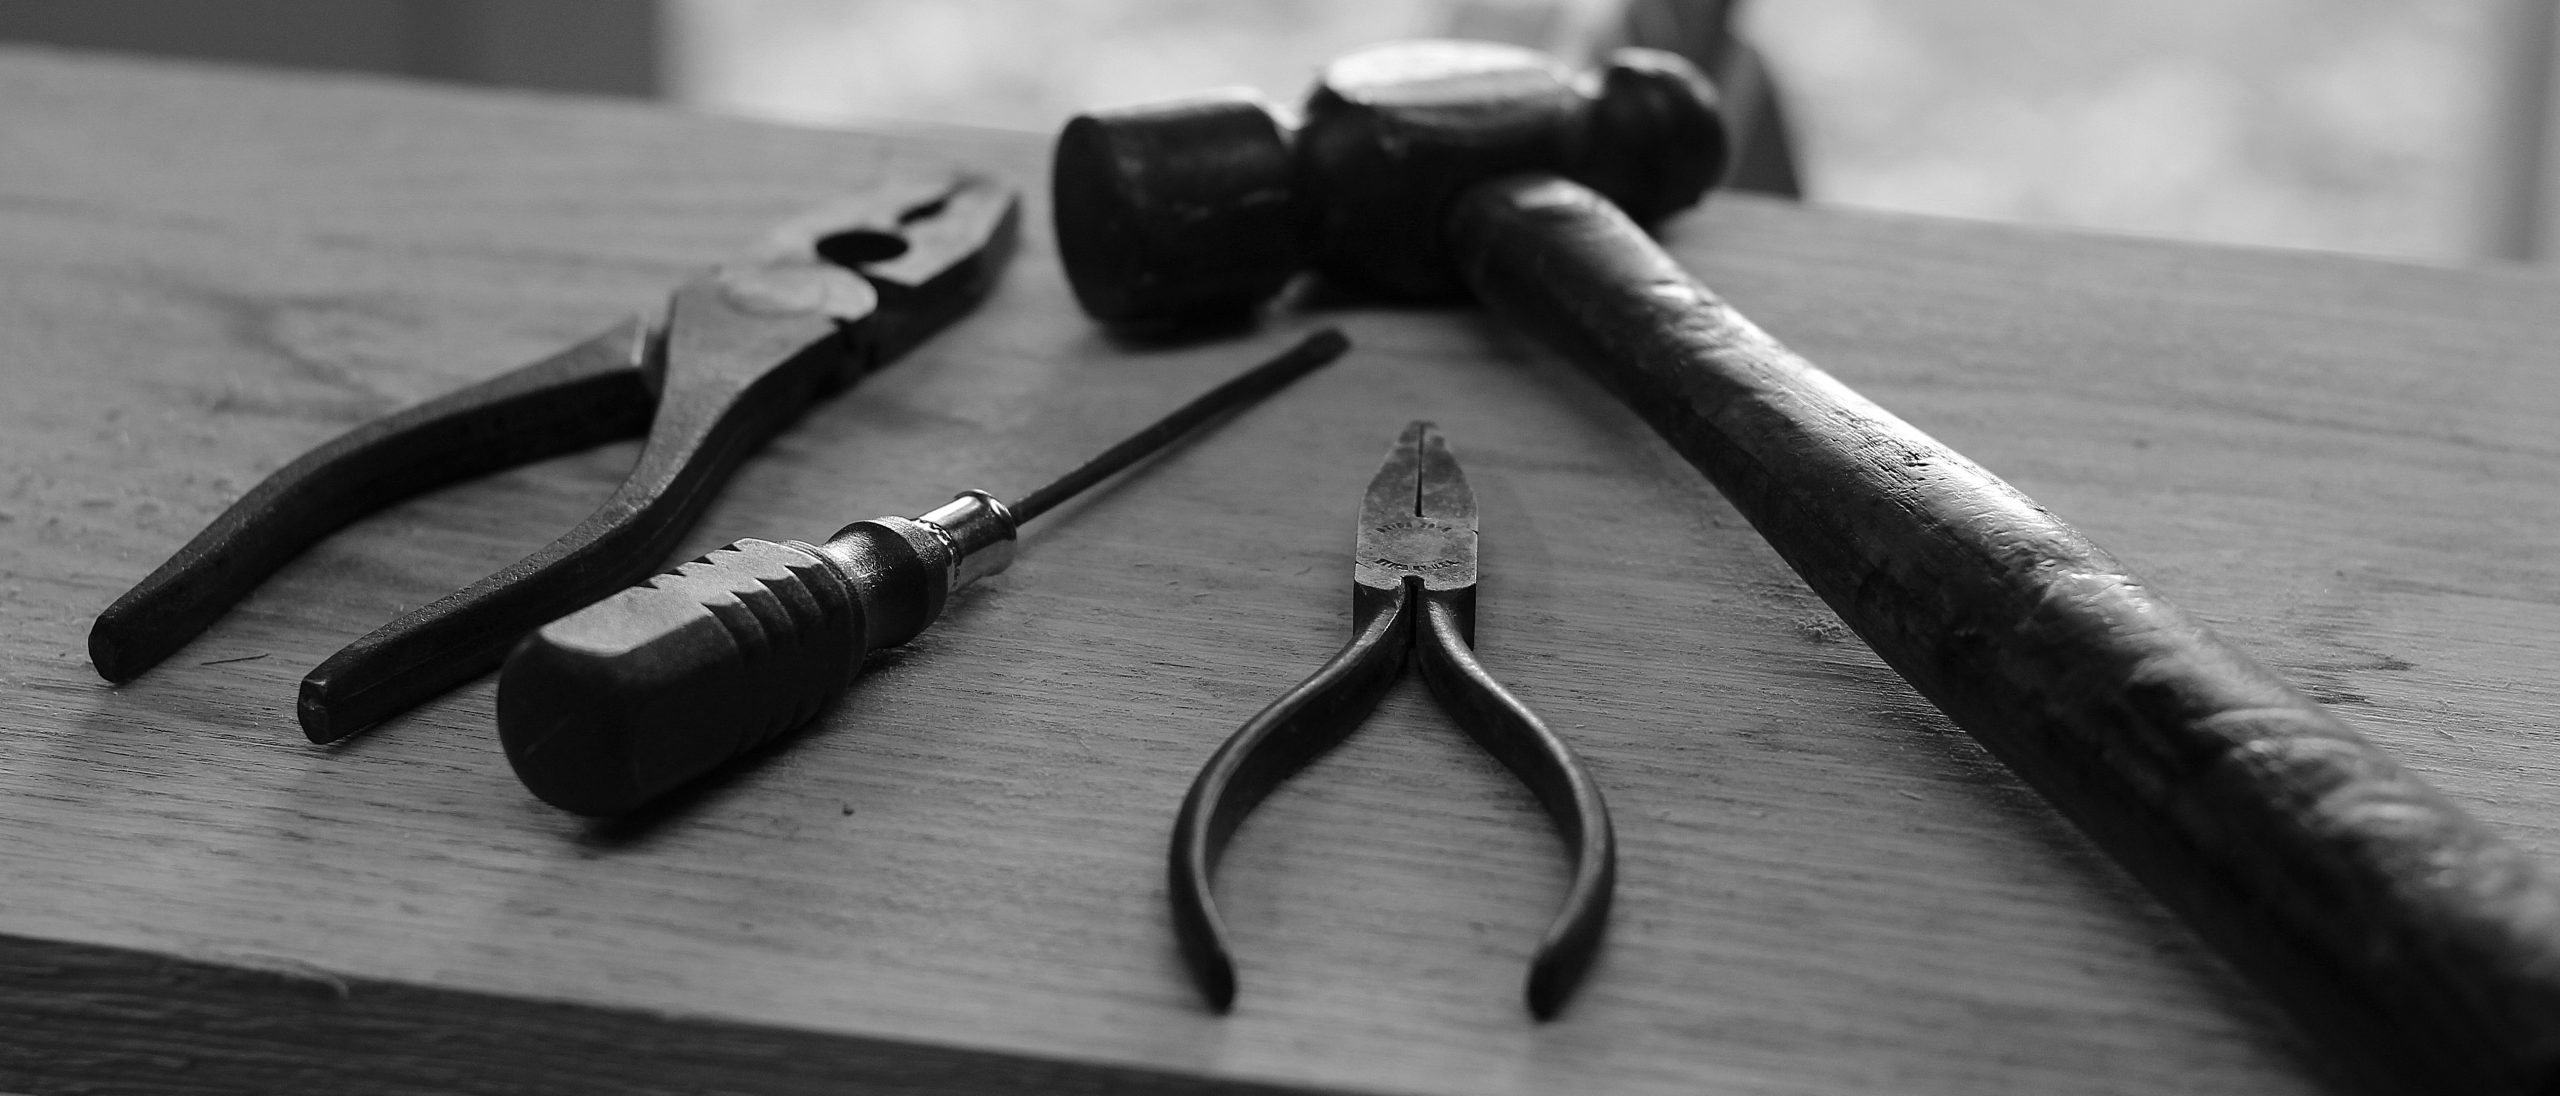 Black and White Photo of Tools on a Plank of Wood